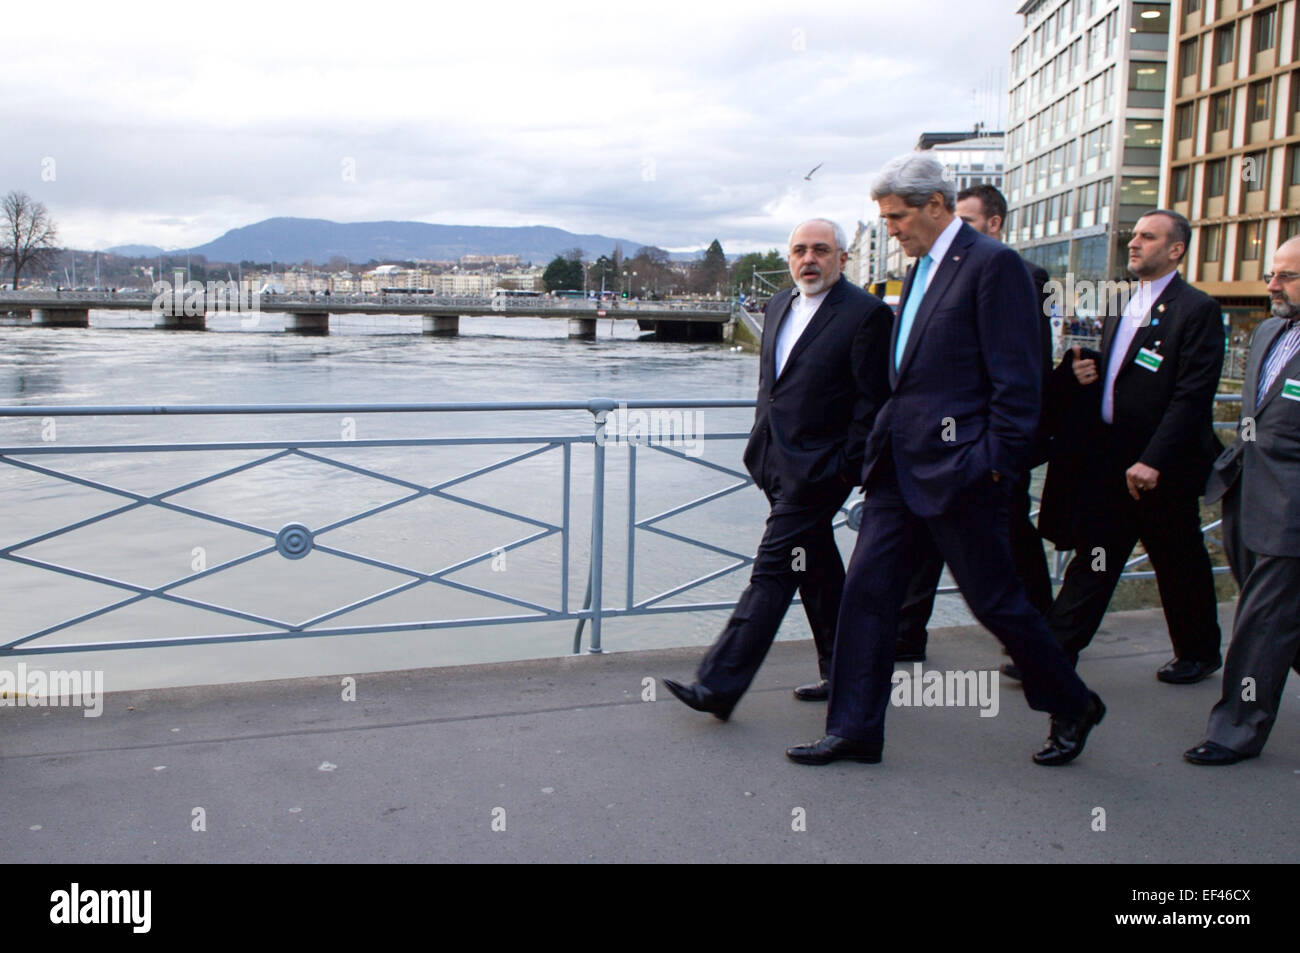 U.S. Secretary of State John Kerry and Iranian Foreign Minister Javad Zarif cross the Rhone River on the Pont de - Stock Image